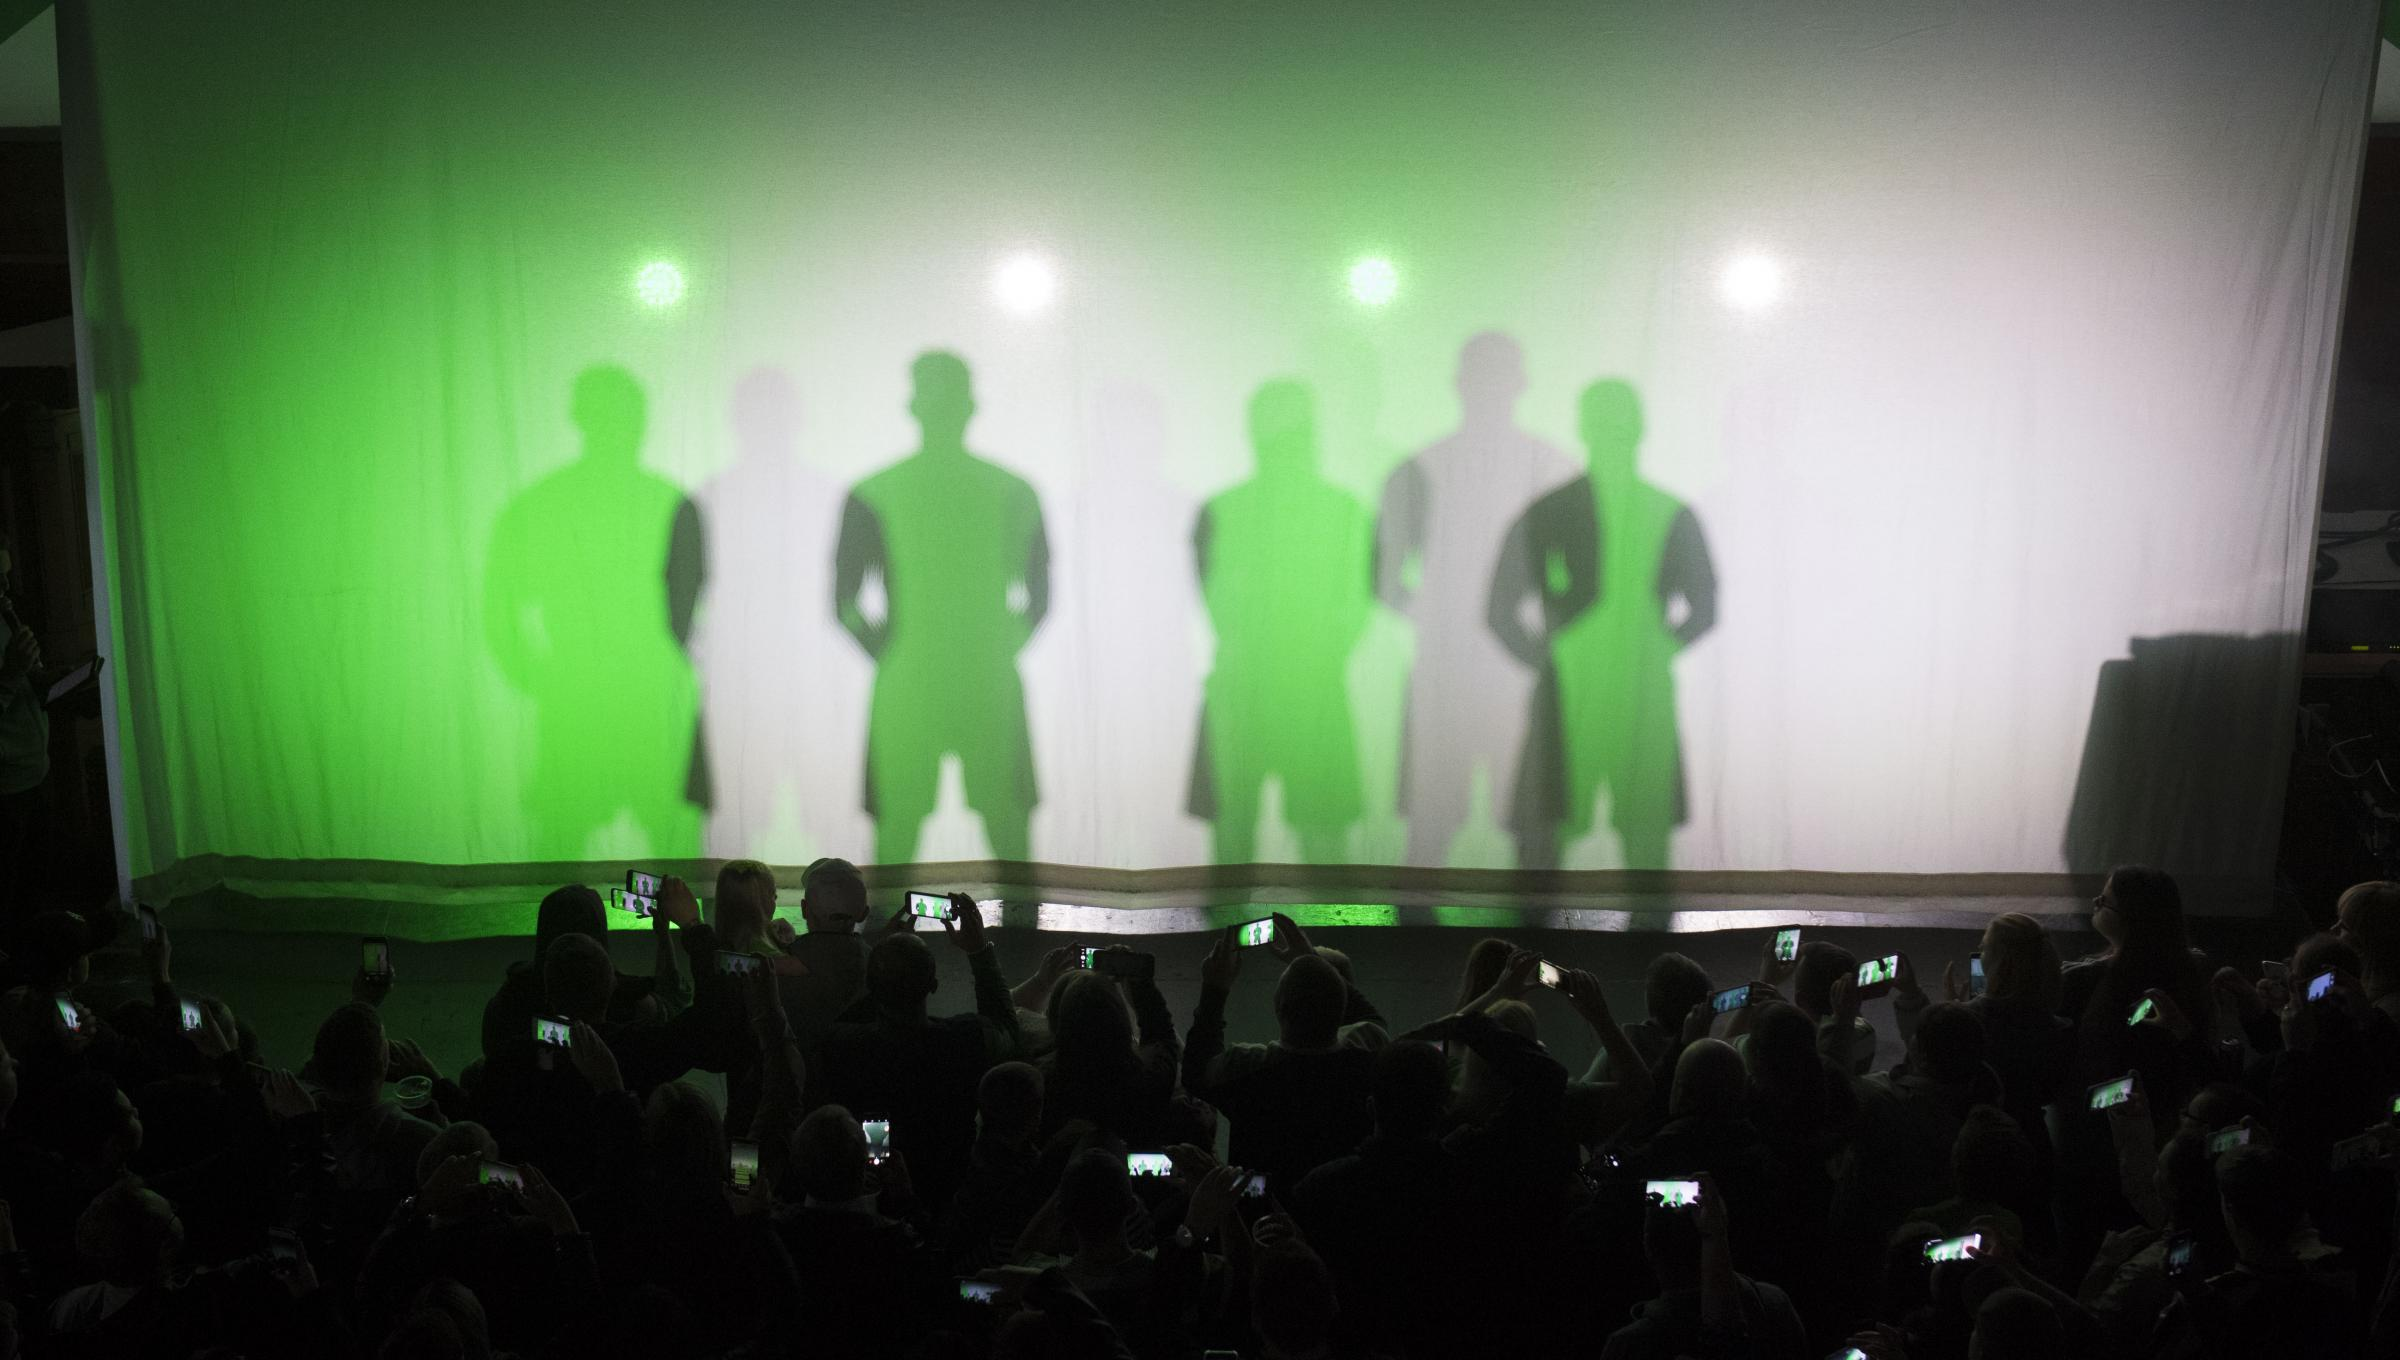 23/04/18 . ST LUKE'S - GLASGOW . Celtic launch their new home kit for season 2018/2019 with an event at St Luke's, in Glasgow. The players appear behind a curtain at first before the reveal.